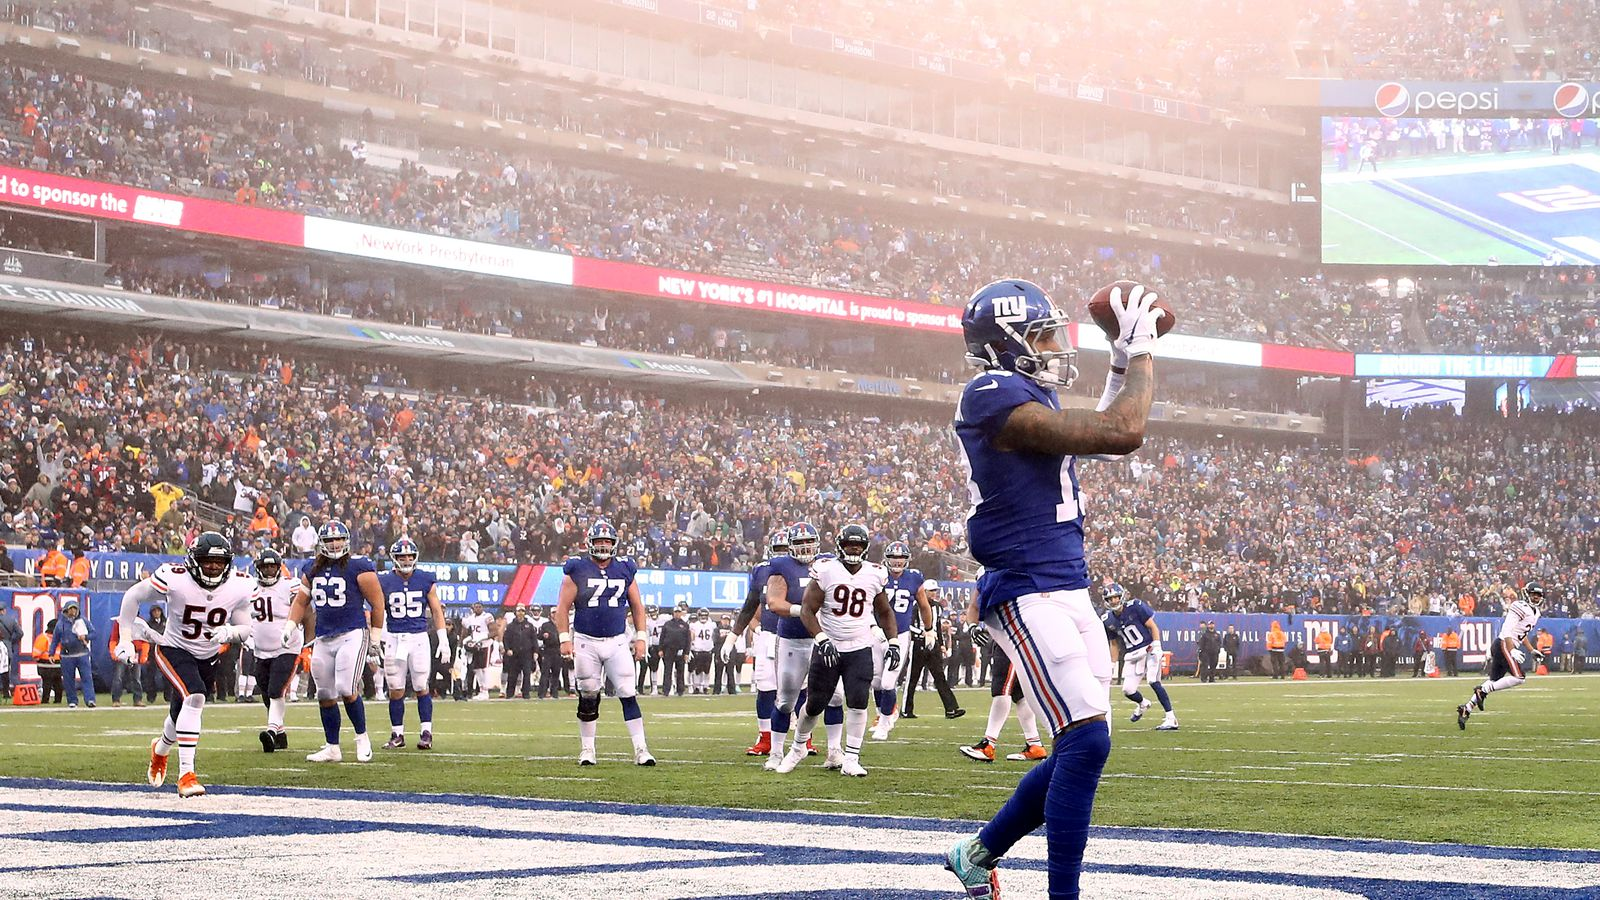 PFT: A 'sense persists' the 49ers will pursue Odell Beckham Jr.